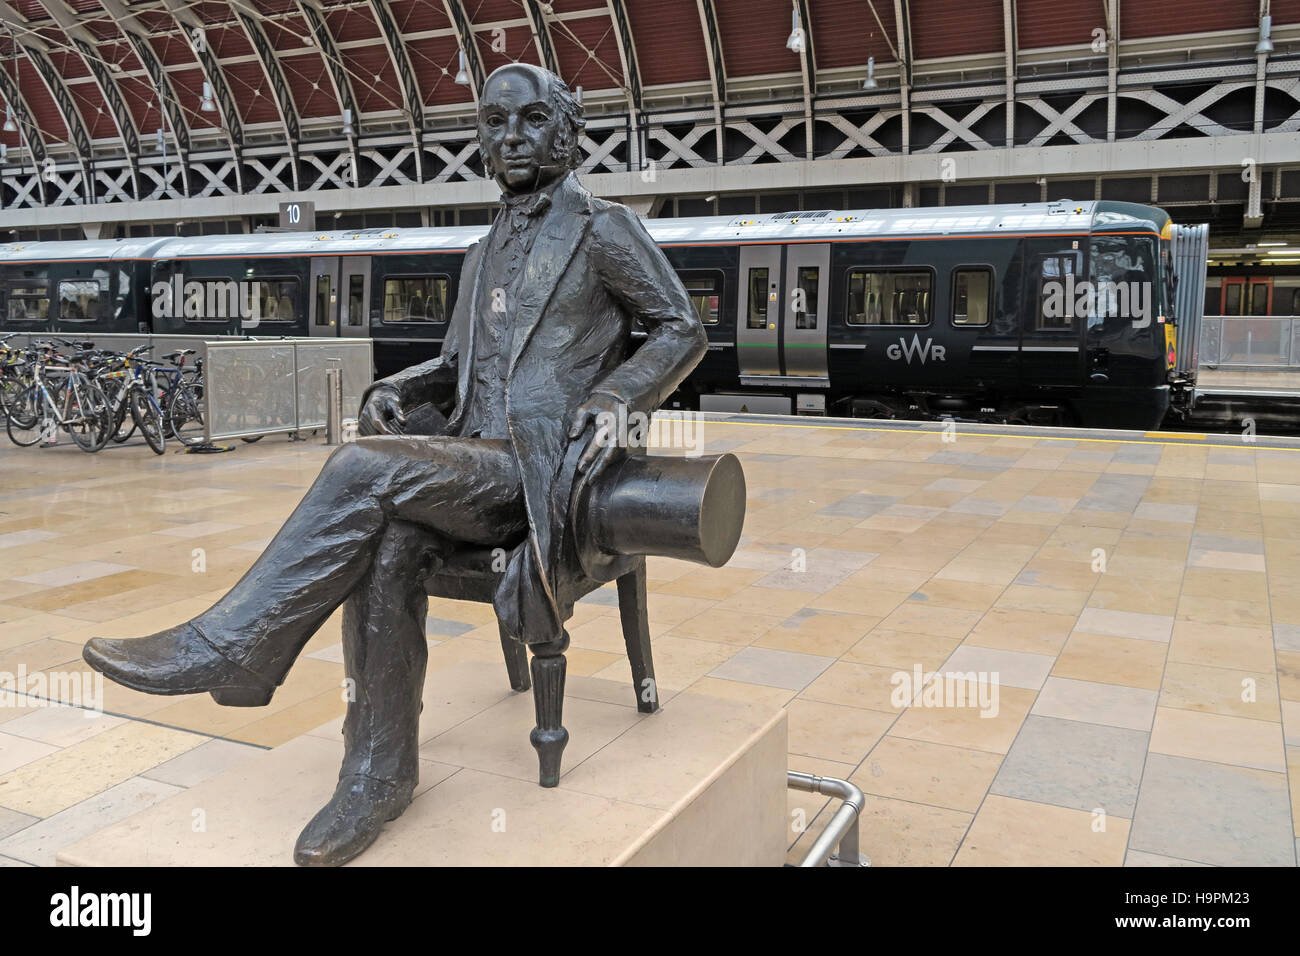 art,Great,Western,railway,station,rail,pioneer,history,historic,new,First,TOC,operating,company,artwork,platform,travel,traveller,communication,Paddington Station,Paddington Railway Station,First Group,First Great Western,train operating company,GoTonySmith,@HotpixUK,Tony,Smith,UK,GB,Great,Britain,United,Kingdom,English,British,England,Buy Pictures of,Buy Images Of,Images of,Stock Images,Tony Smith,United Kingdom,Great Britain,British Isles